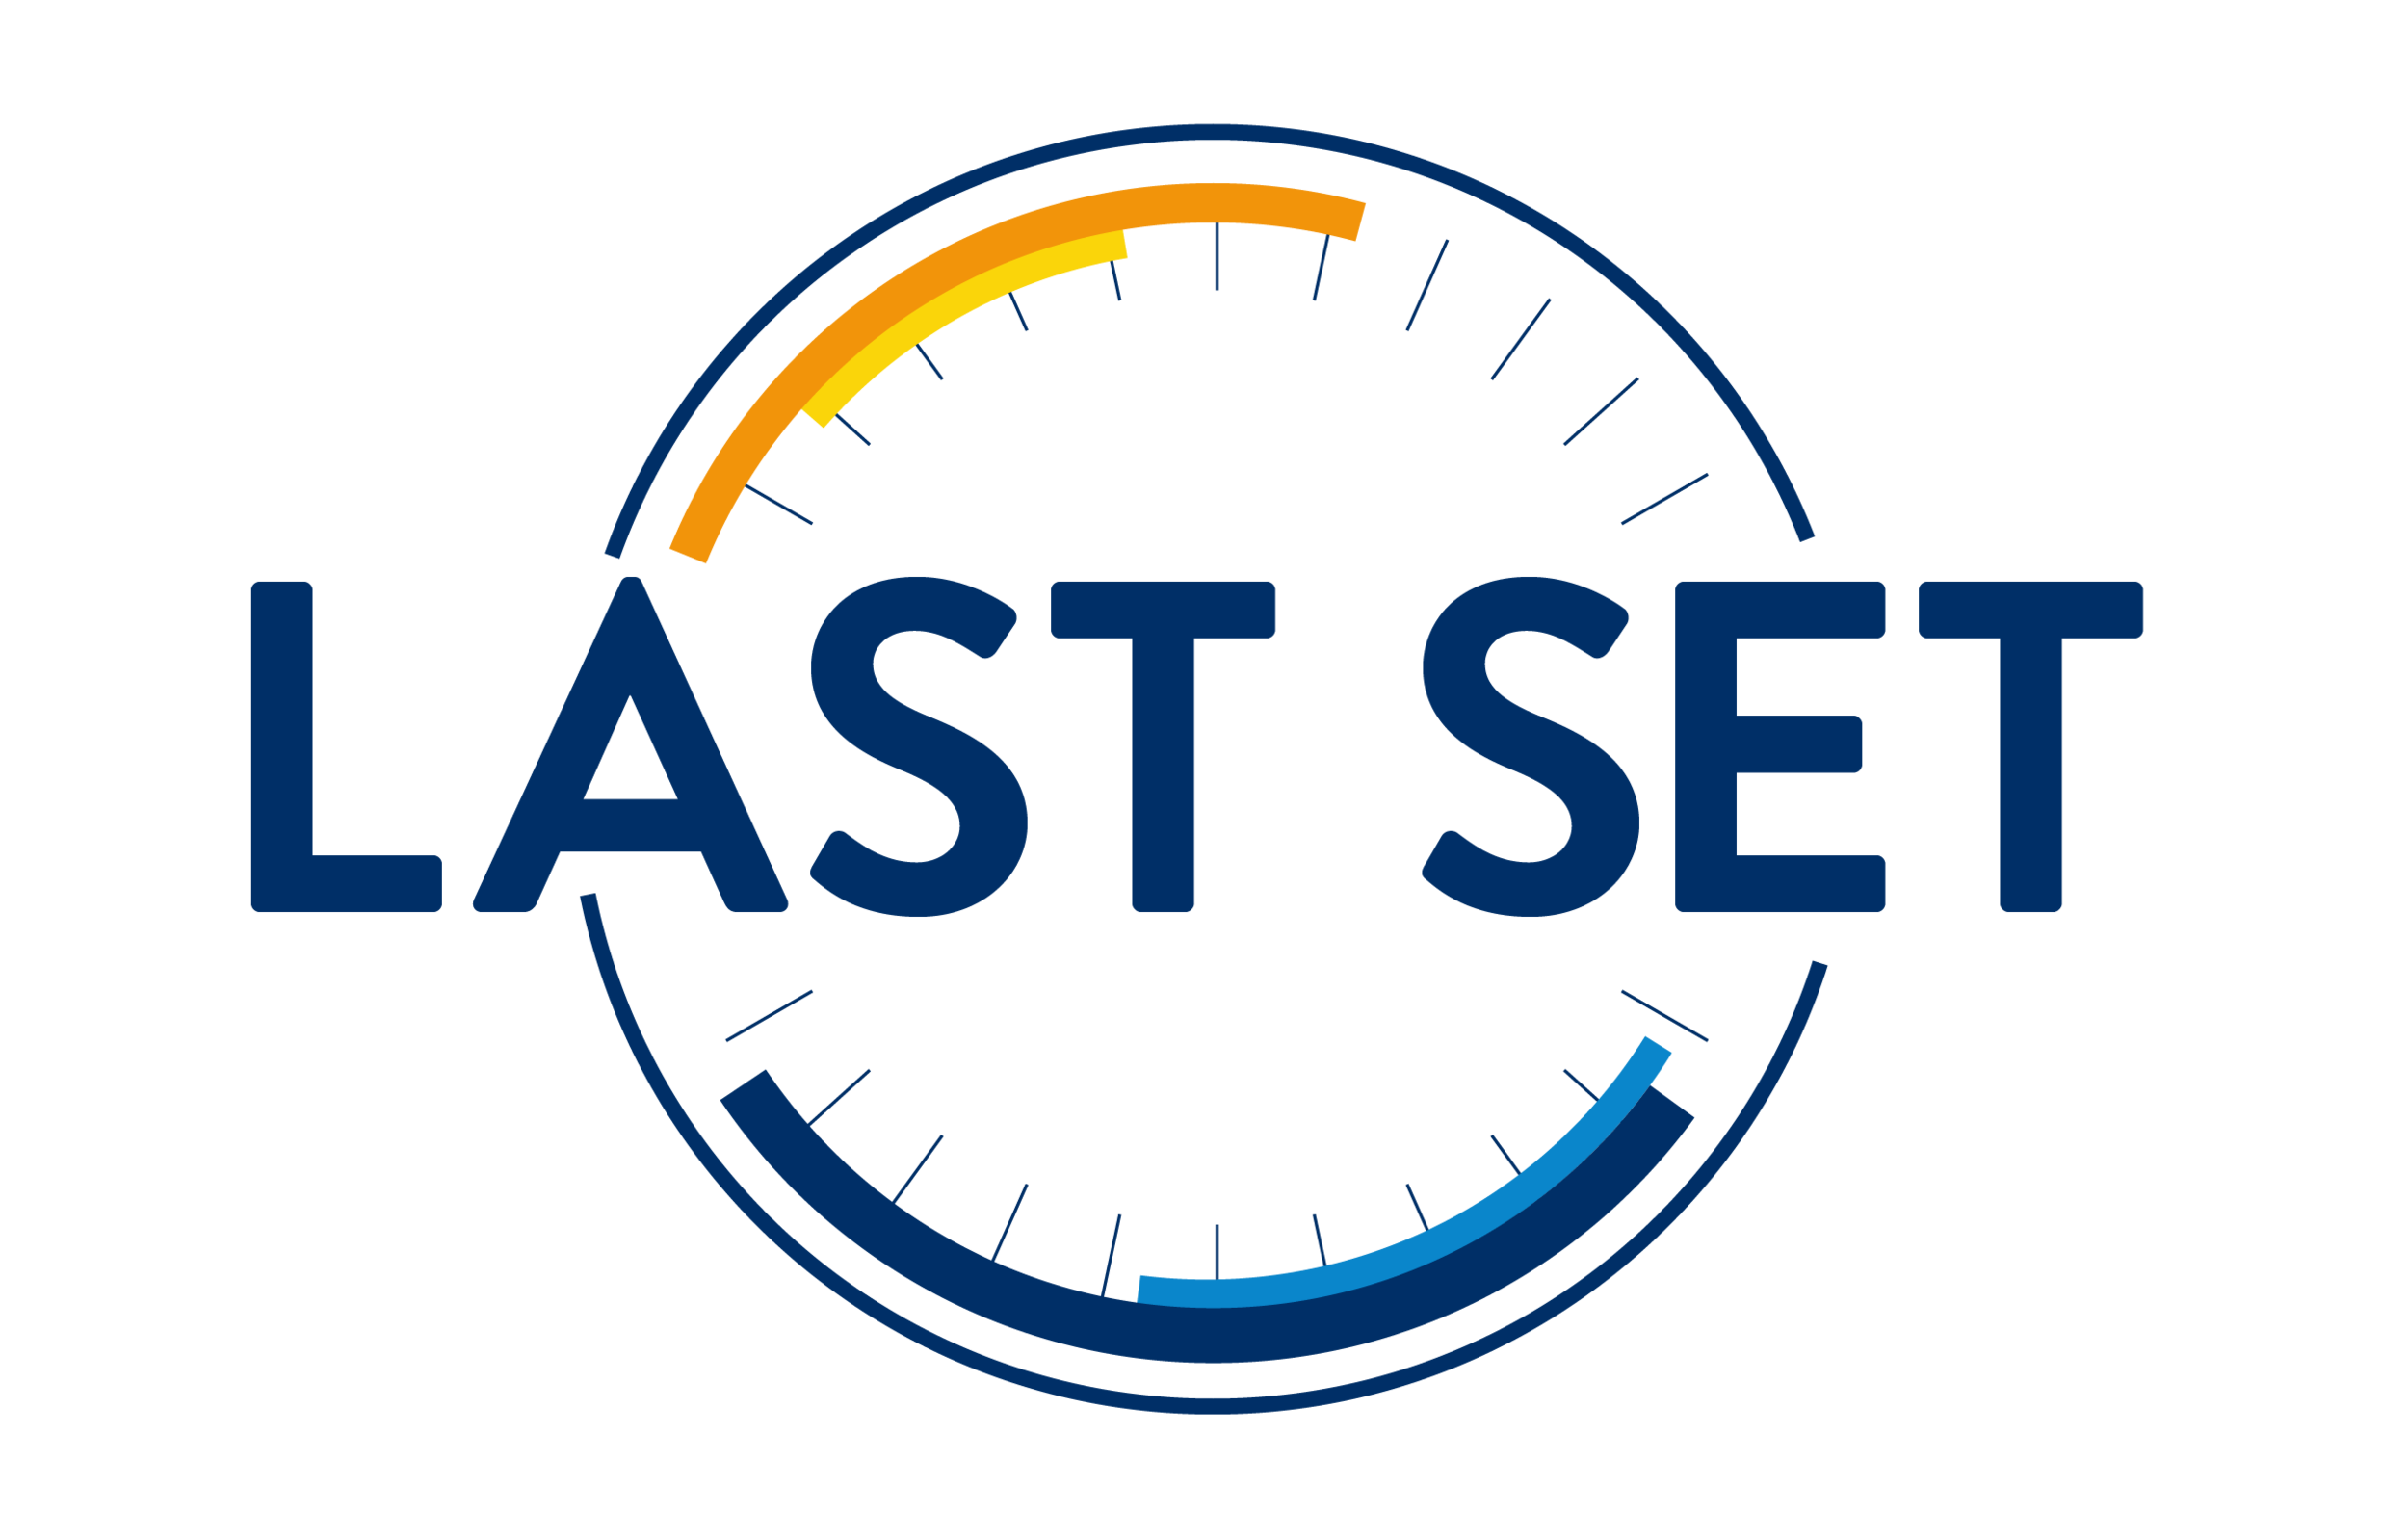 Last Set Logo_Dark Blue.png